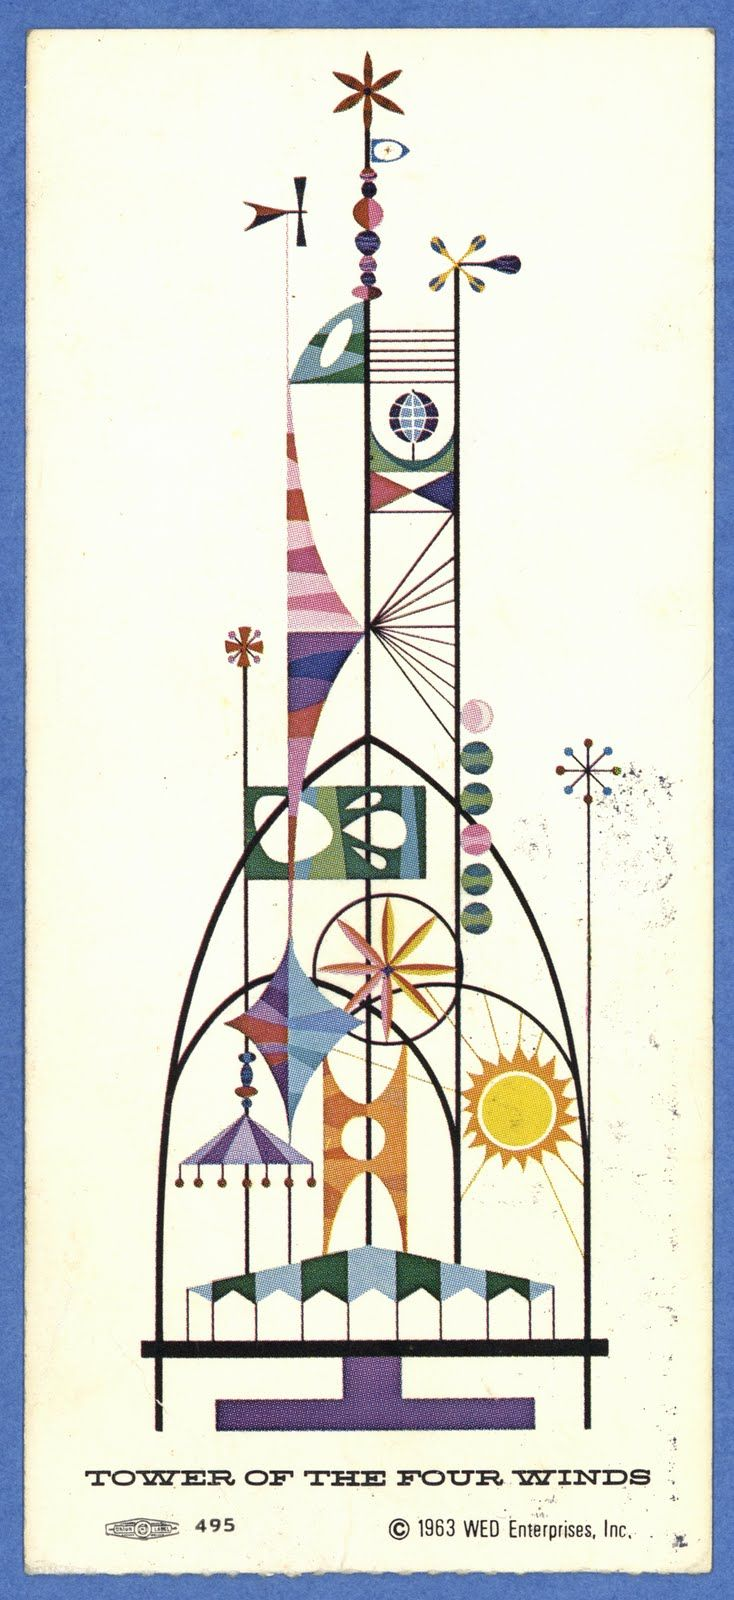 """Back of an """"it's a small world"""" Ticket from the 1964 New York World's Fair featuring the Tower of the Four Winds by Rolly Crump"""